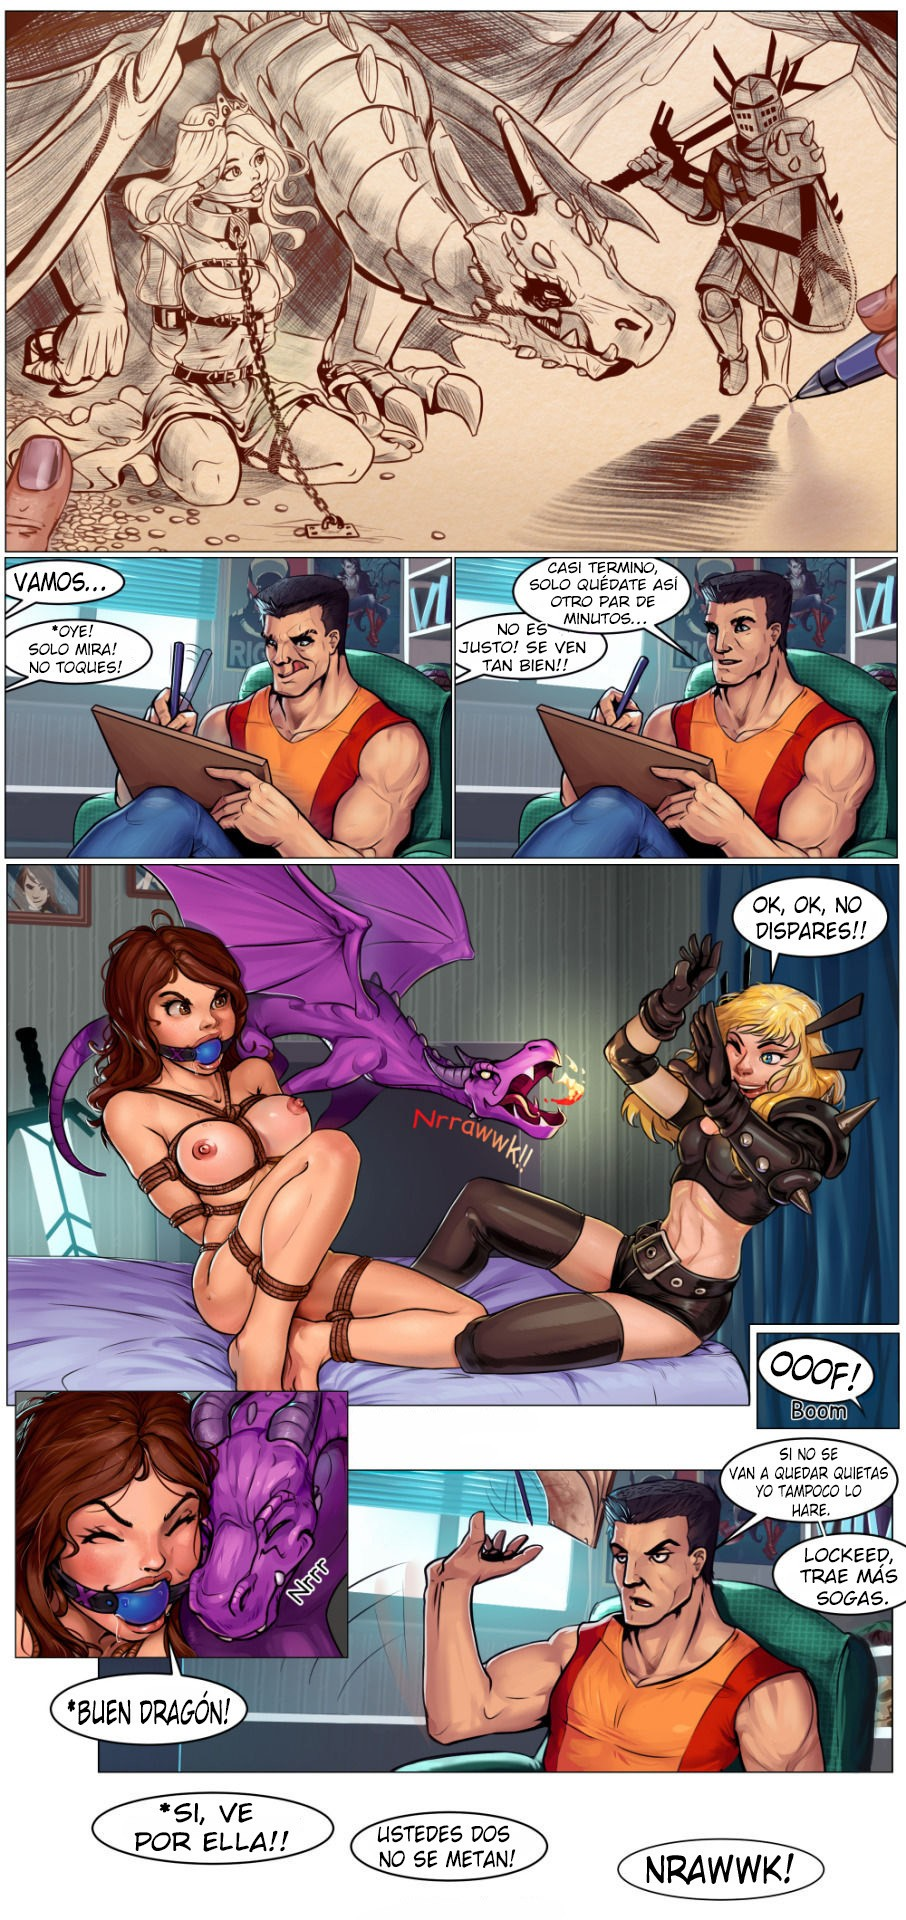 NightGames03.jpg comic porno